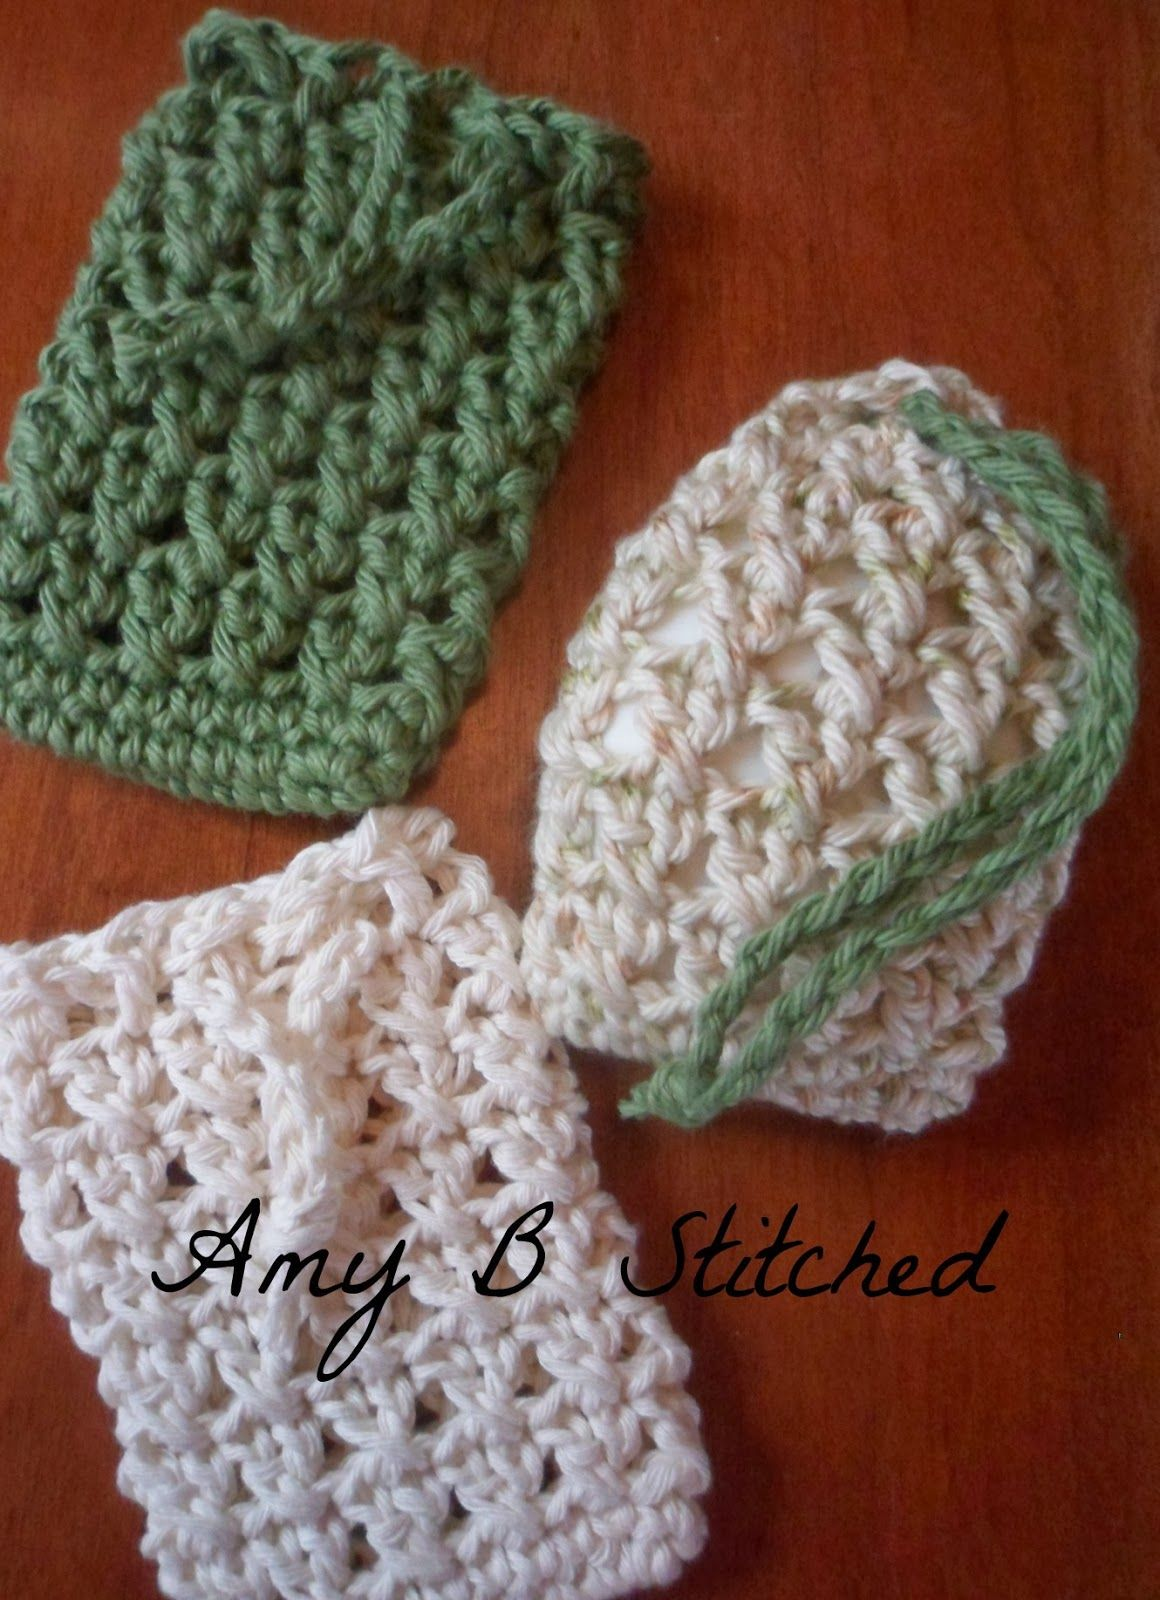 Knitted Soap Holder Pattern : A Stitch At A Time for Amy B Stitched: Cross Stitch Soap Saver Pouch Crochet ...